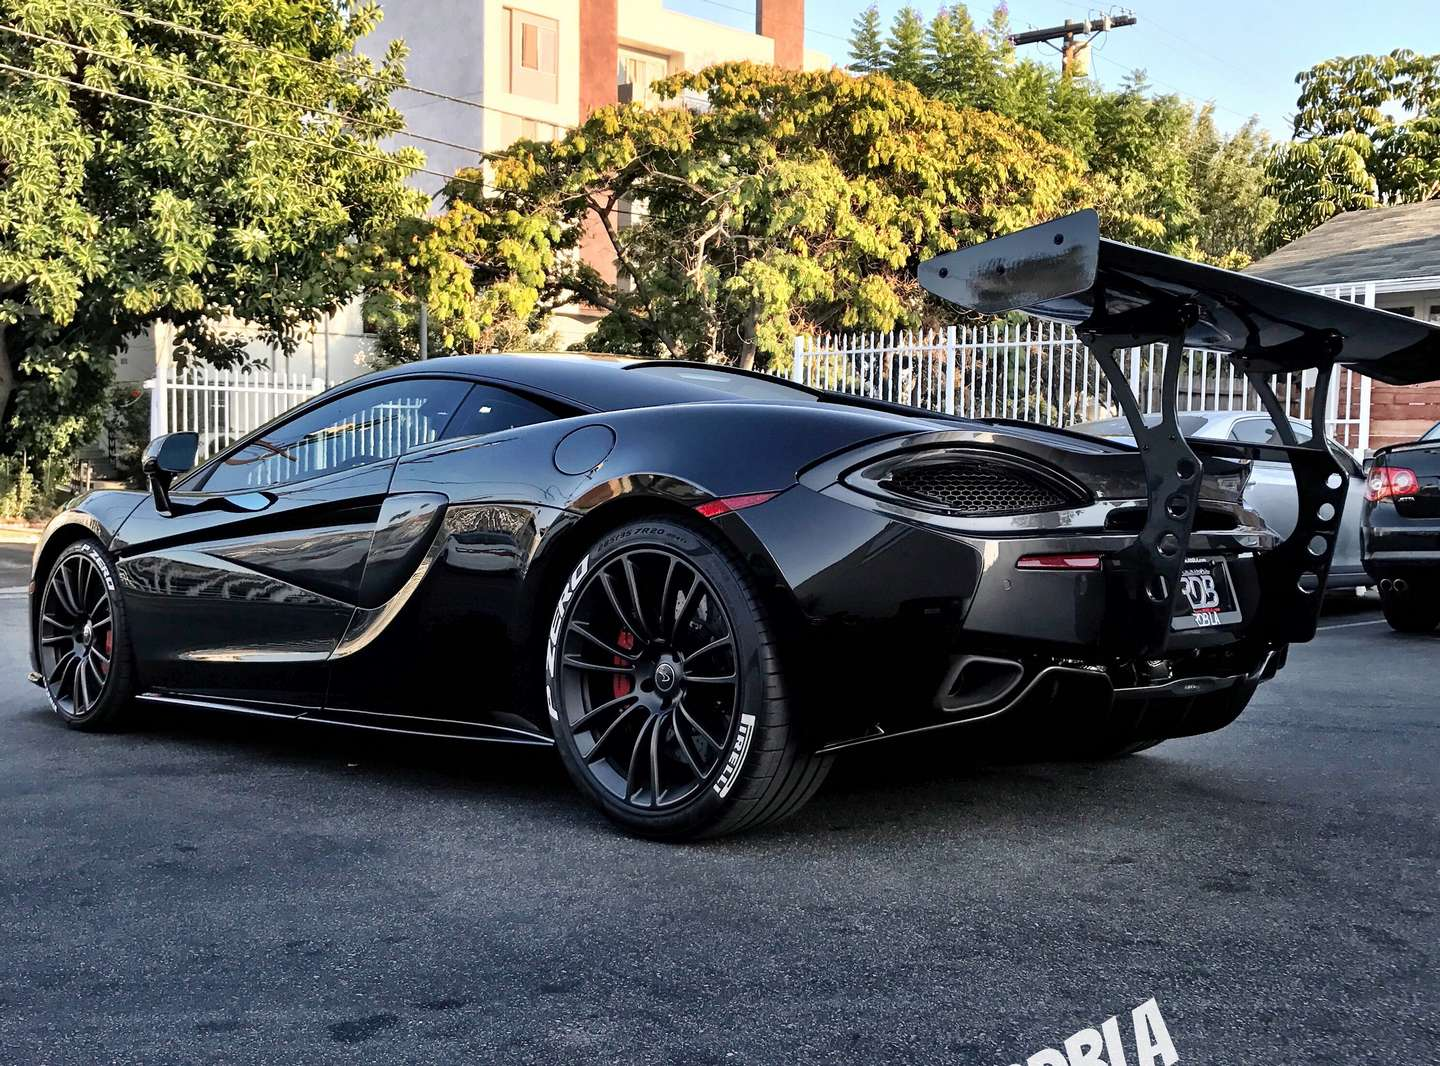 Black Mclaren 570S With a Custom Wing Setup By RDB